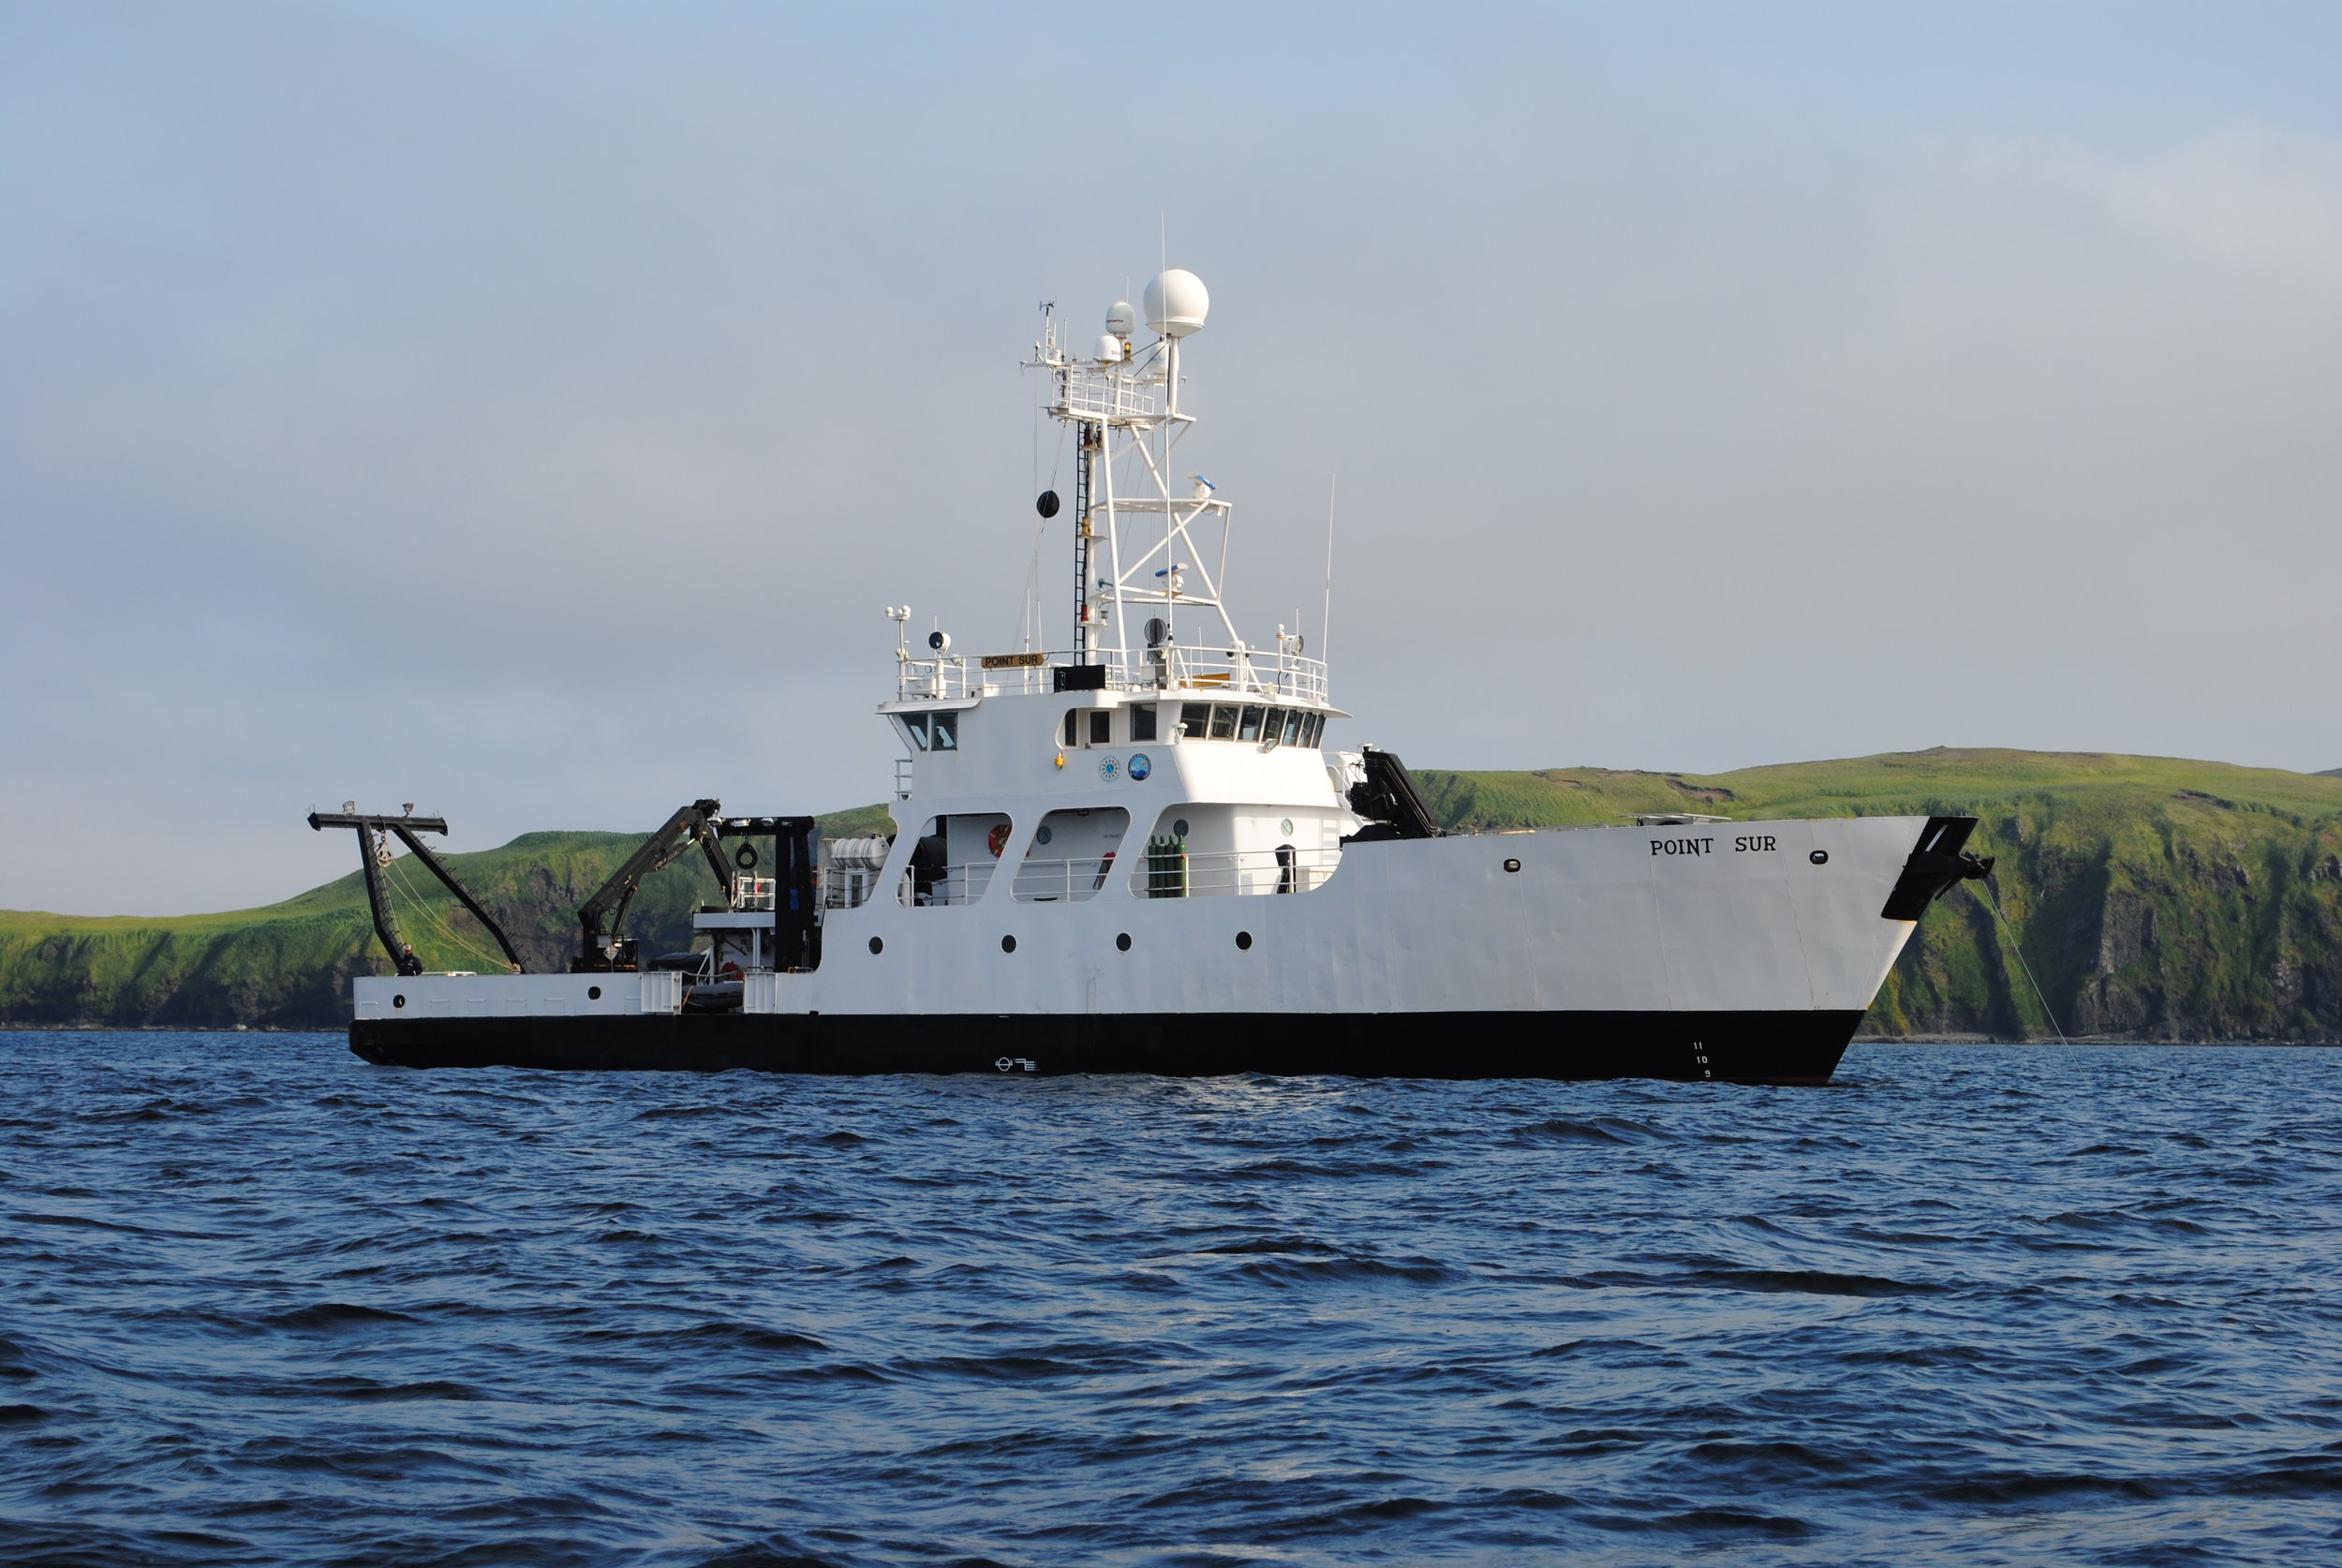 A team of scientists travel aboard the vessel R/V Point Sur during a research expedition to the Aleutian Islands, Alaska in July 2014. Photo: Kim Powell